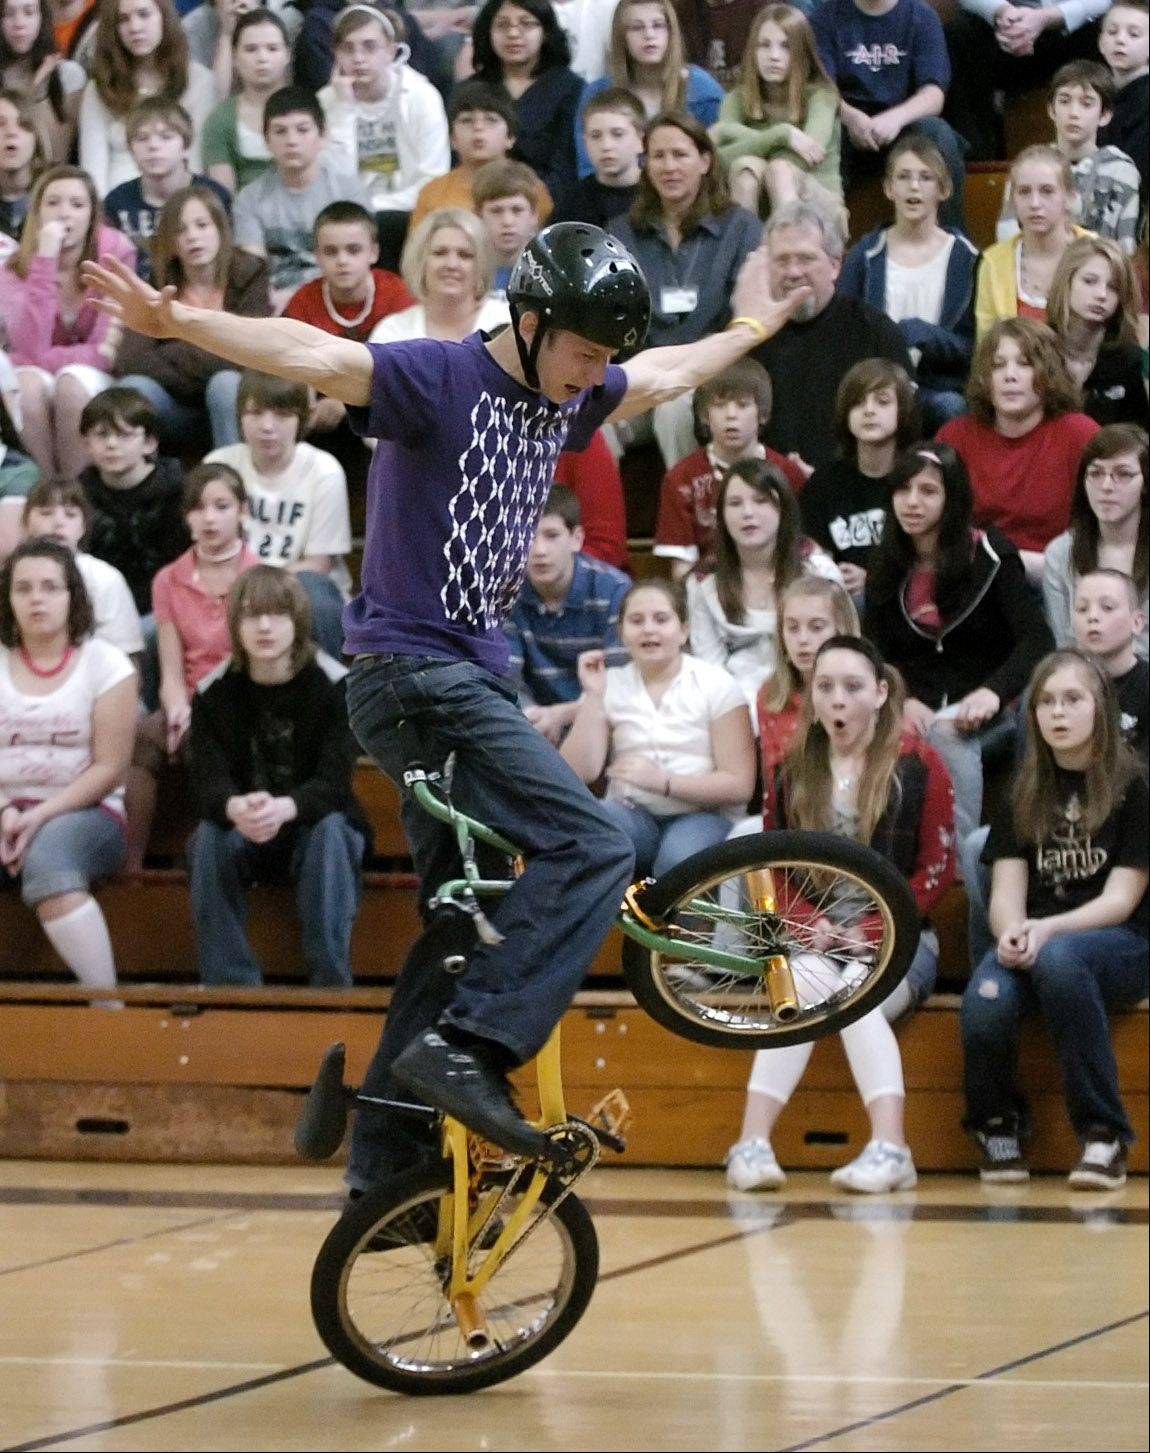 Matt Wilhelm performs for kids at Thompson Middle School in St. Charles.